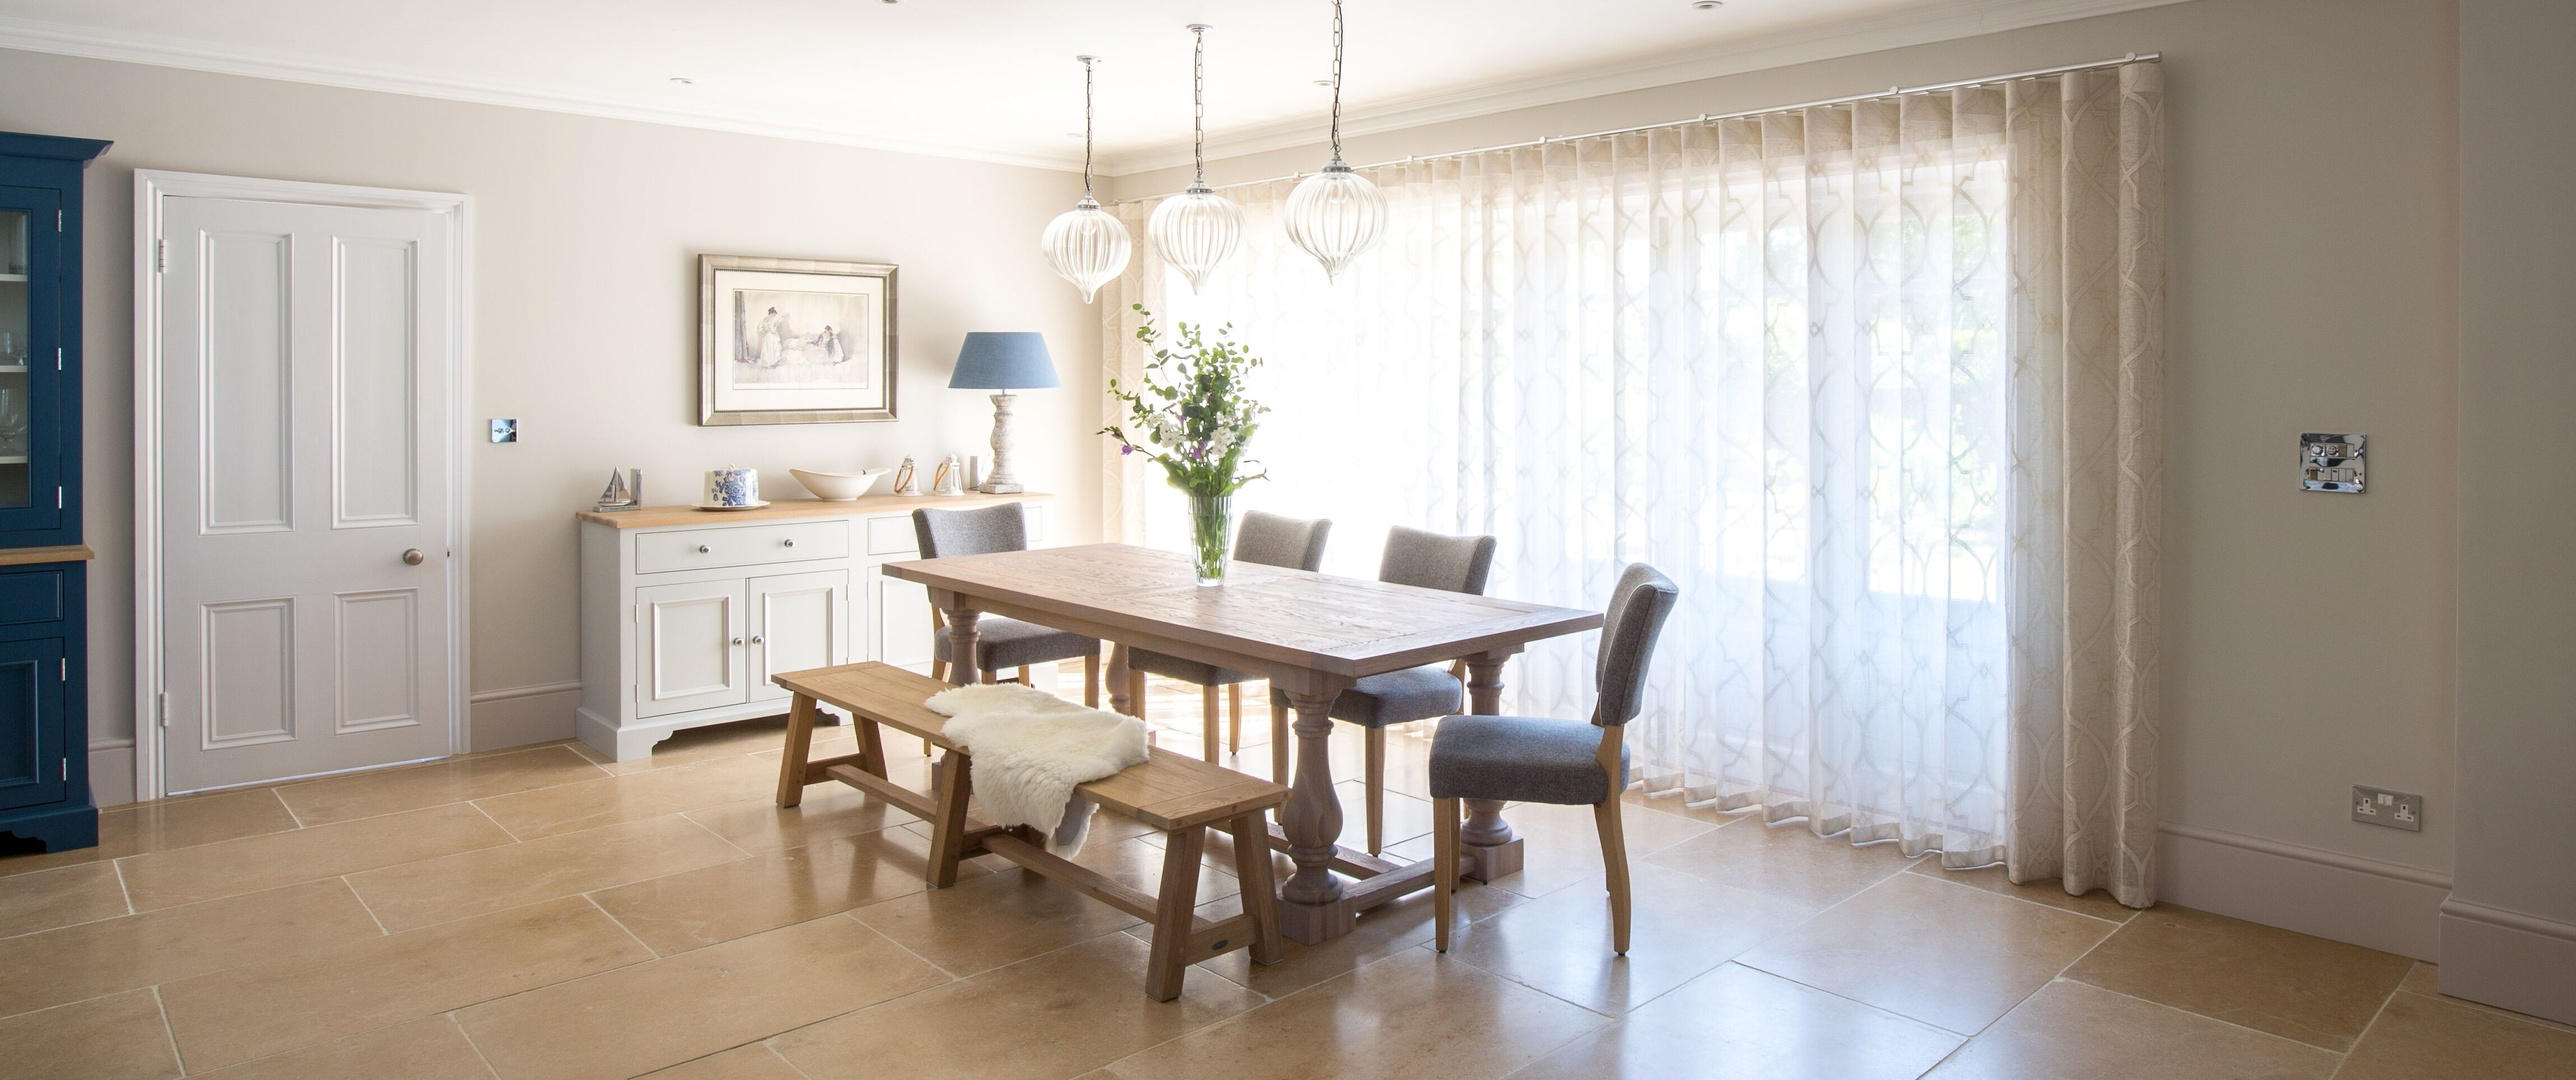 Spacious and soft dining area